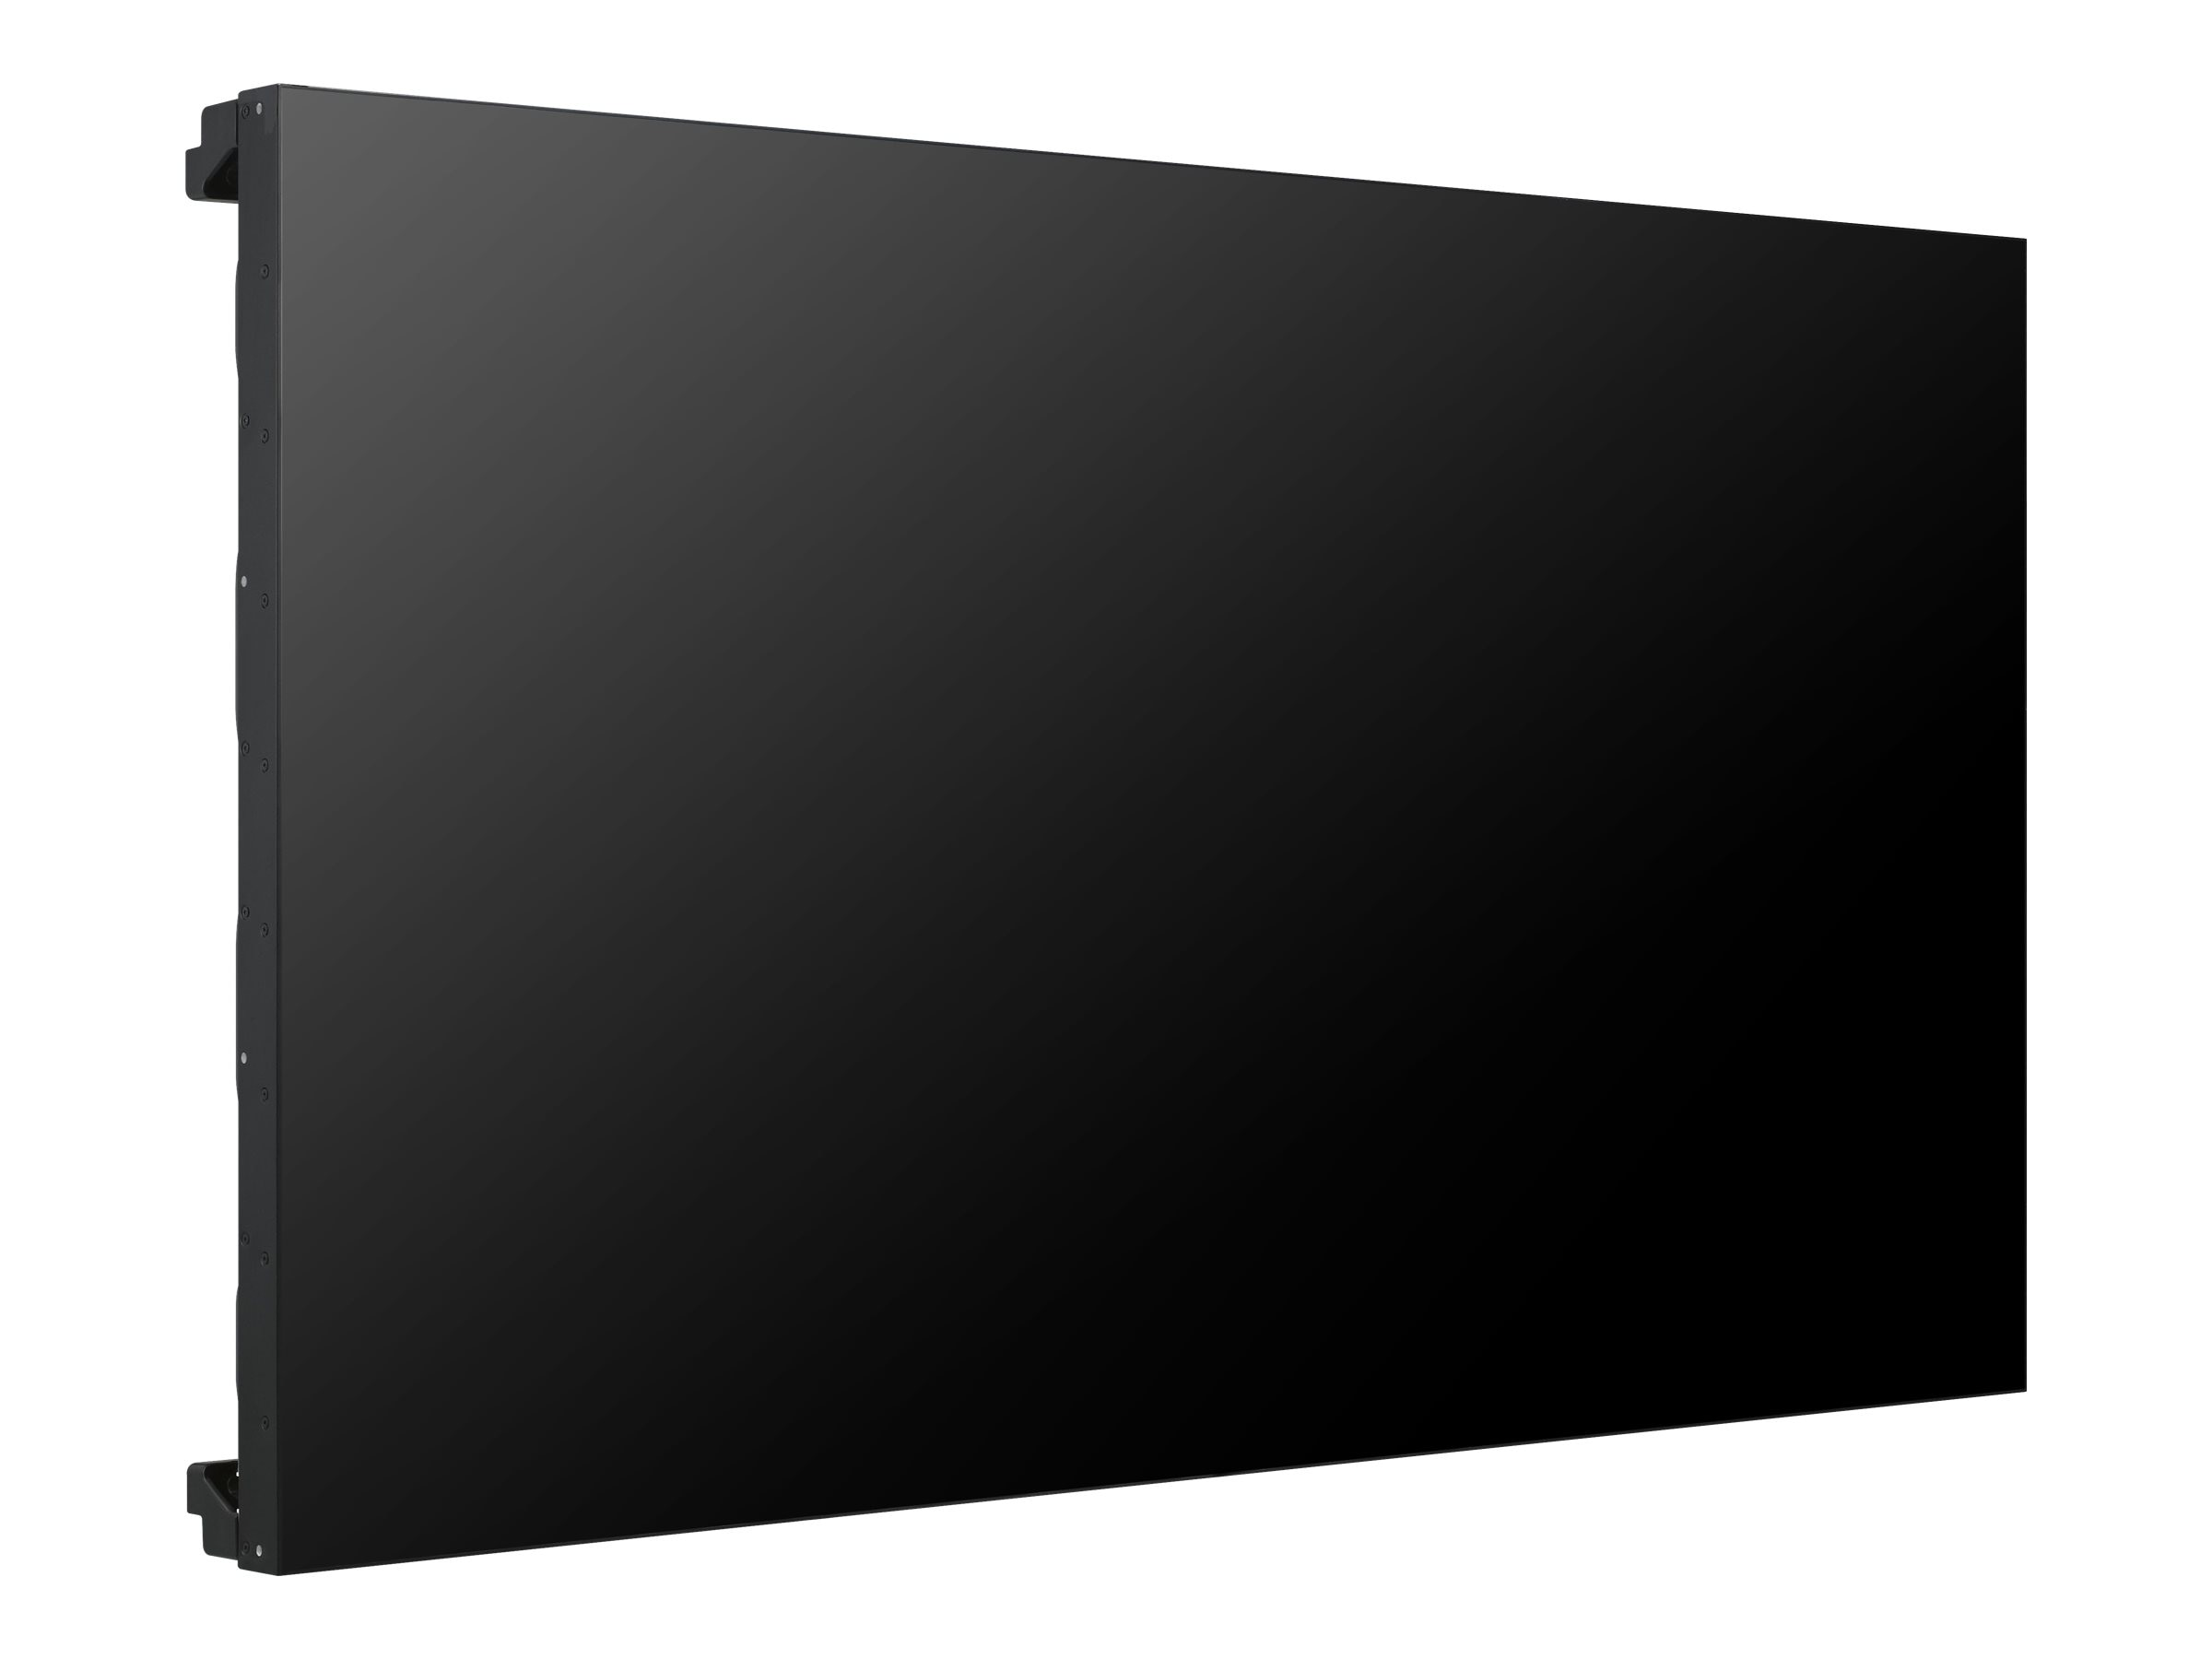 LG 47 LV35A-5B Full HD LED-LCD Display, Black, 47LV35A-5B